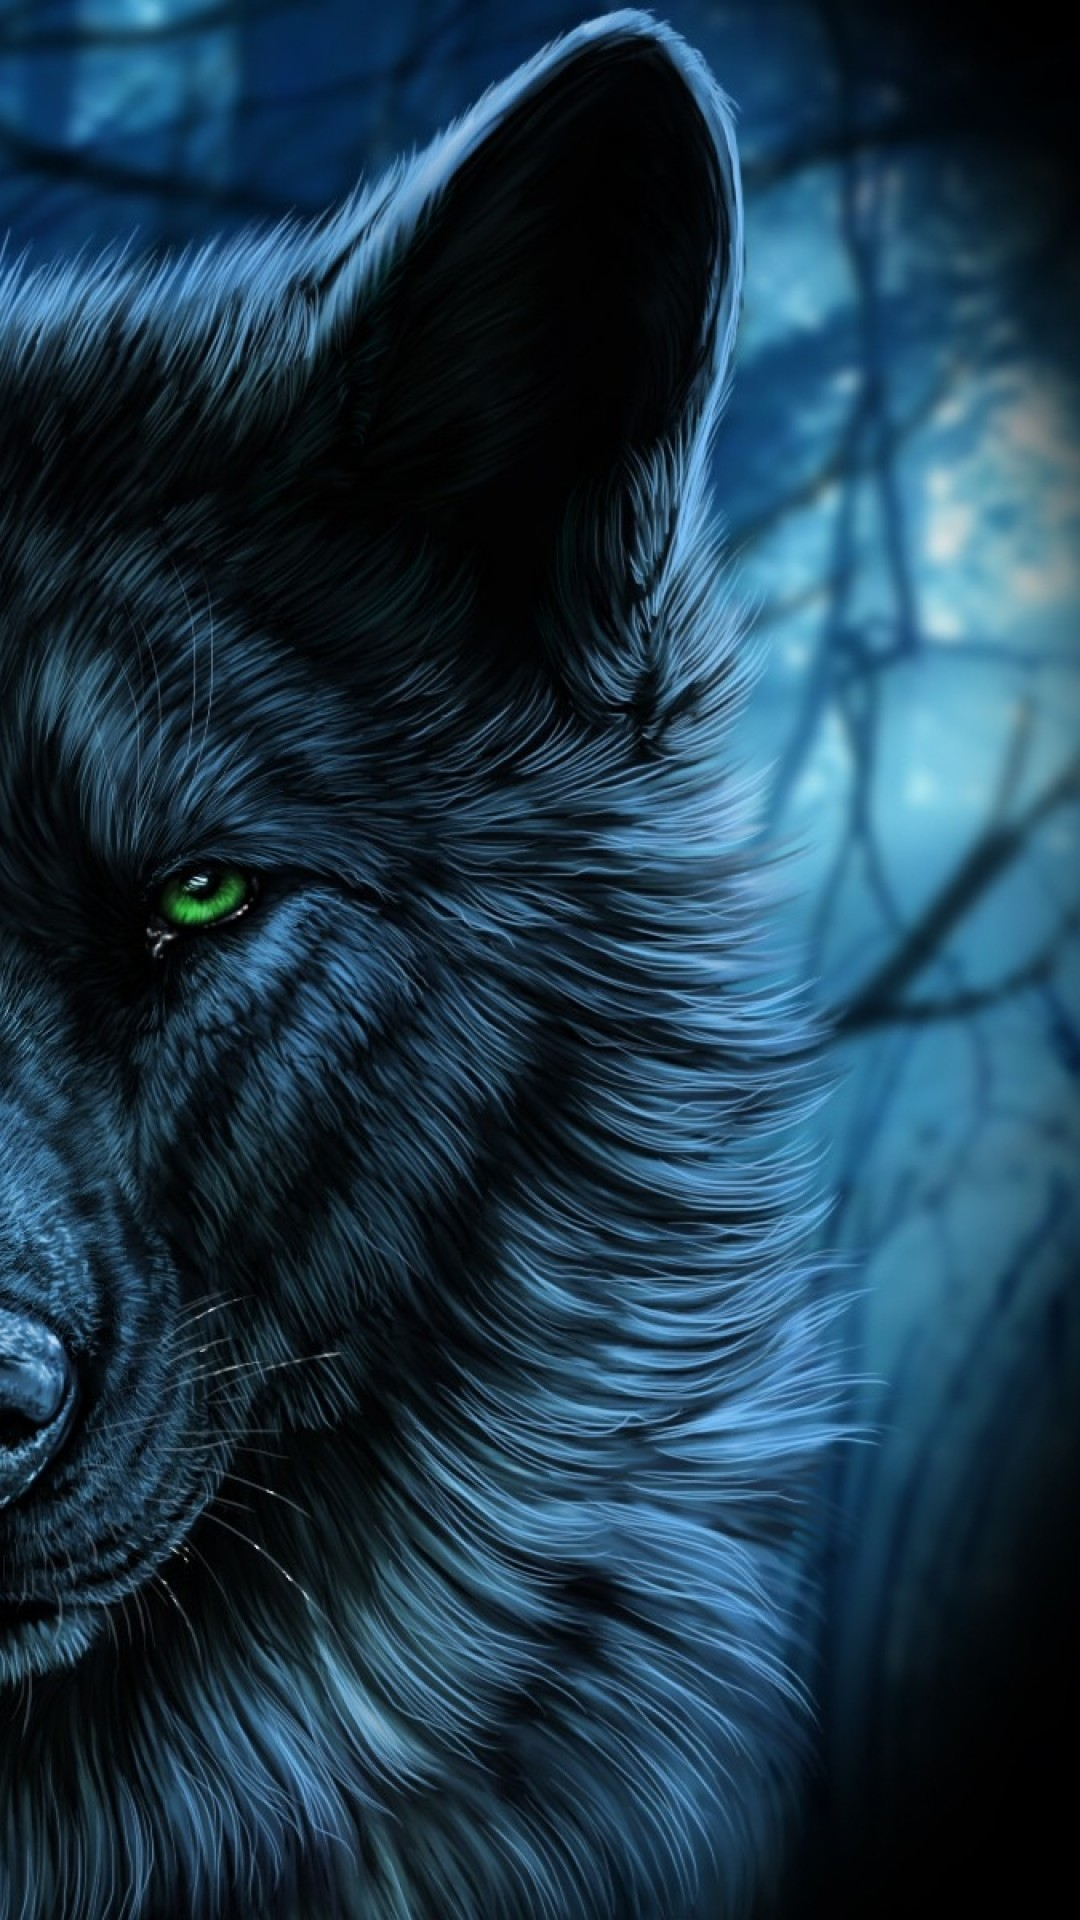 Wolf Wallpaper for iPhone 72 images 1080x1920